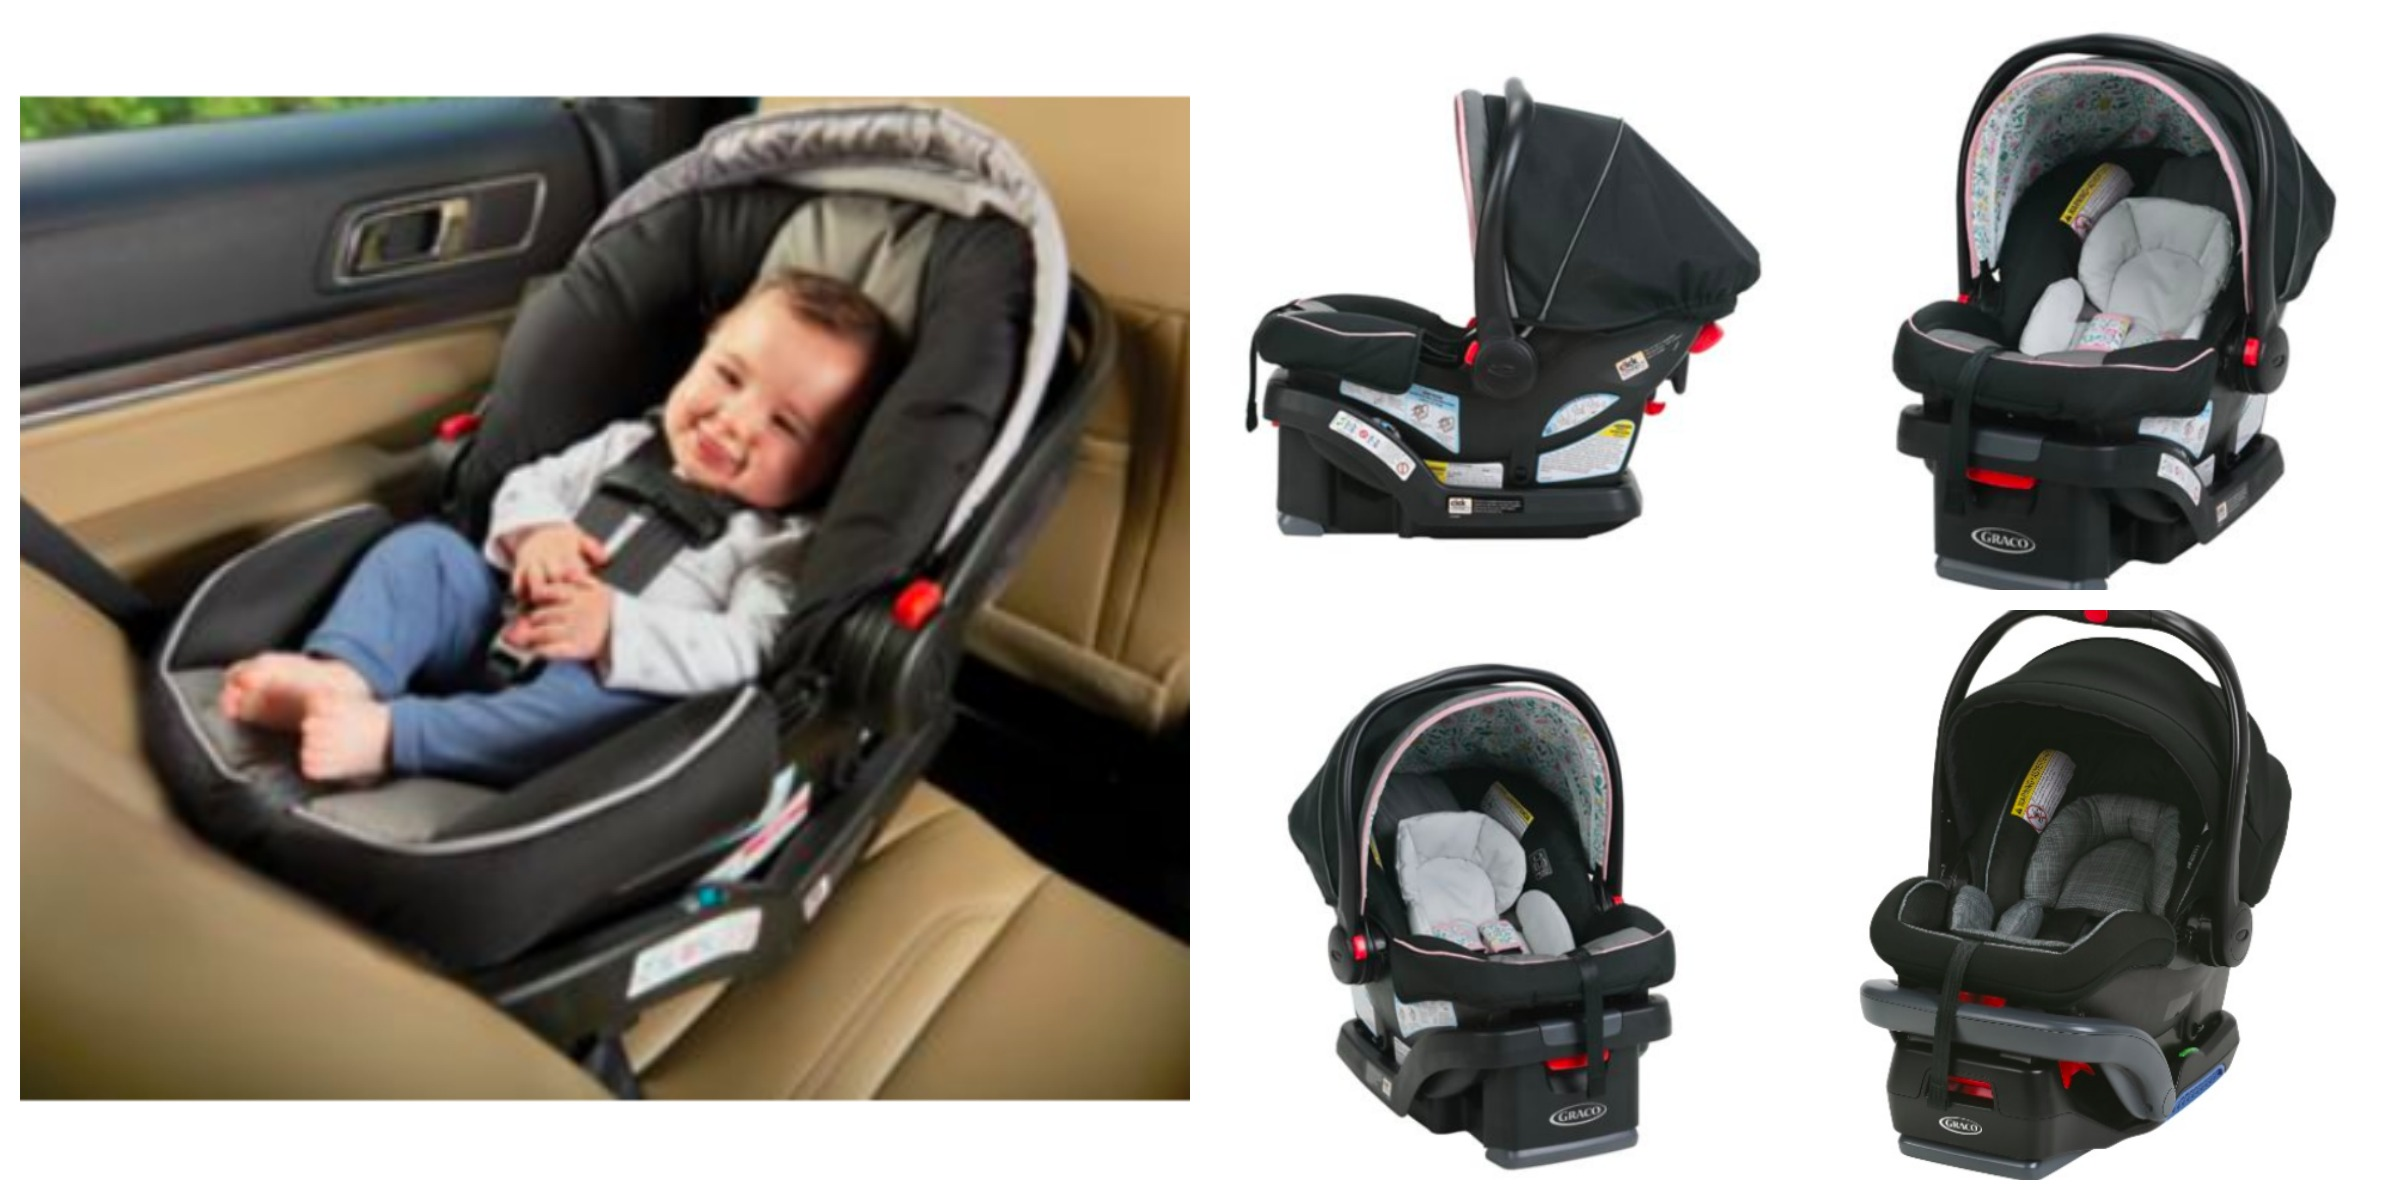 giveaway graco snugride snuglock 30 infant car seat gives parents peace of mind gracobaby. Black Bedroom Furniture Sets. Home Design Ideas